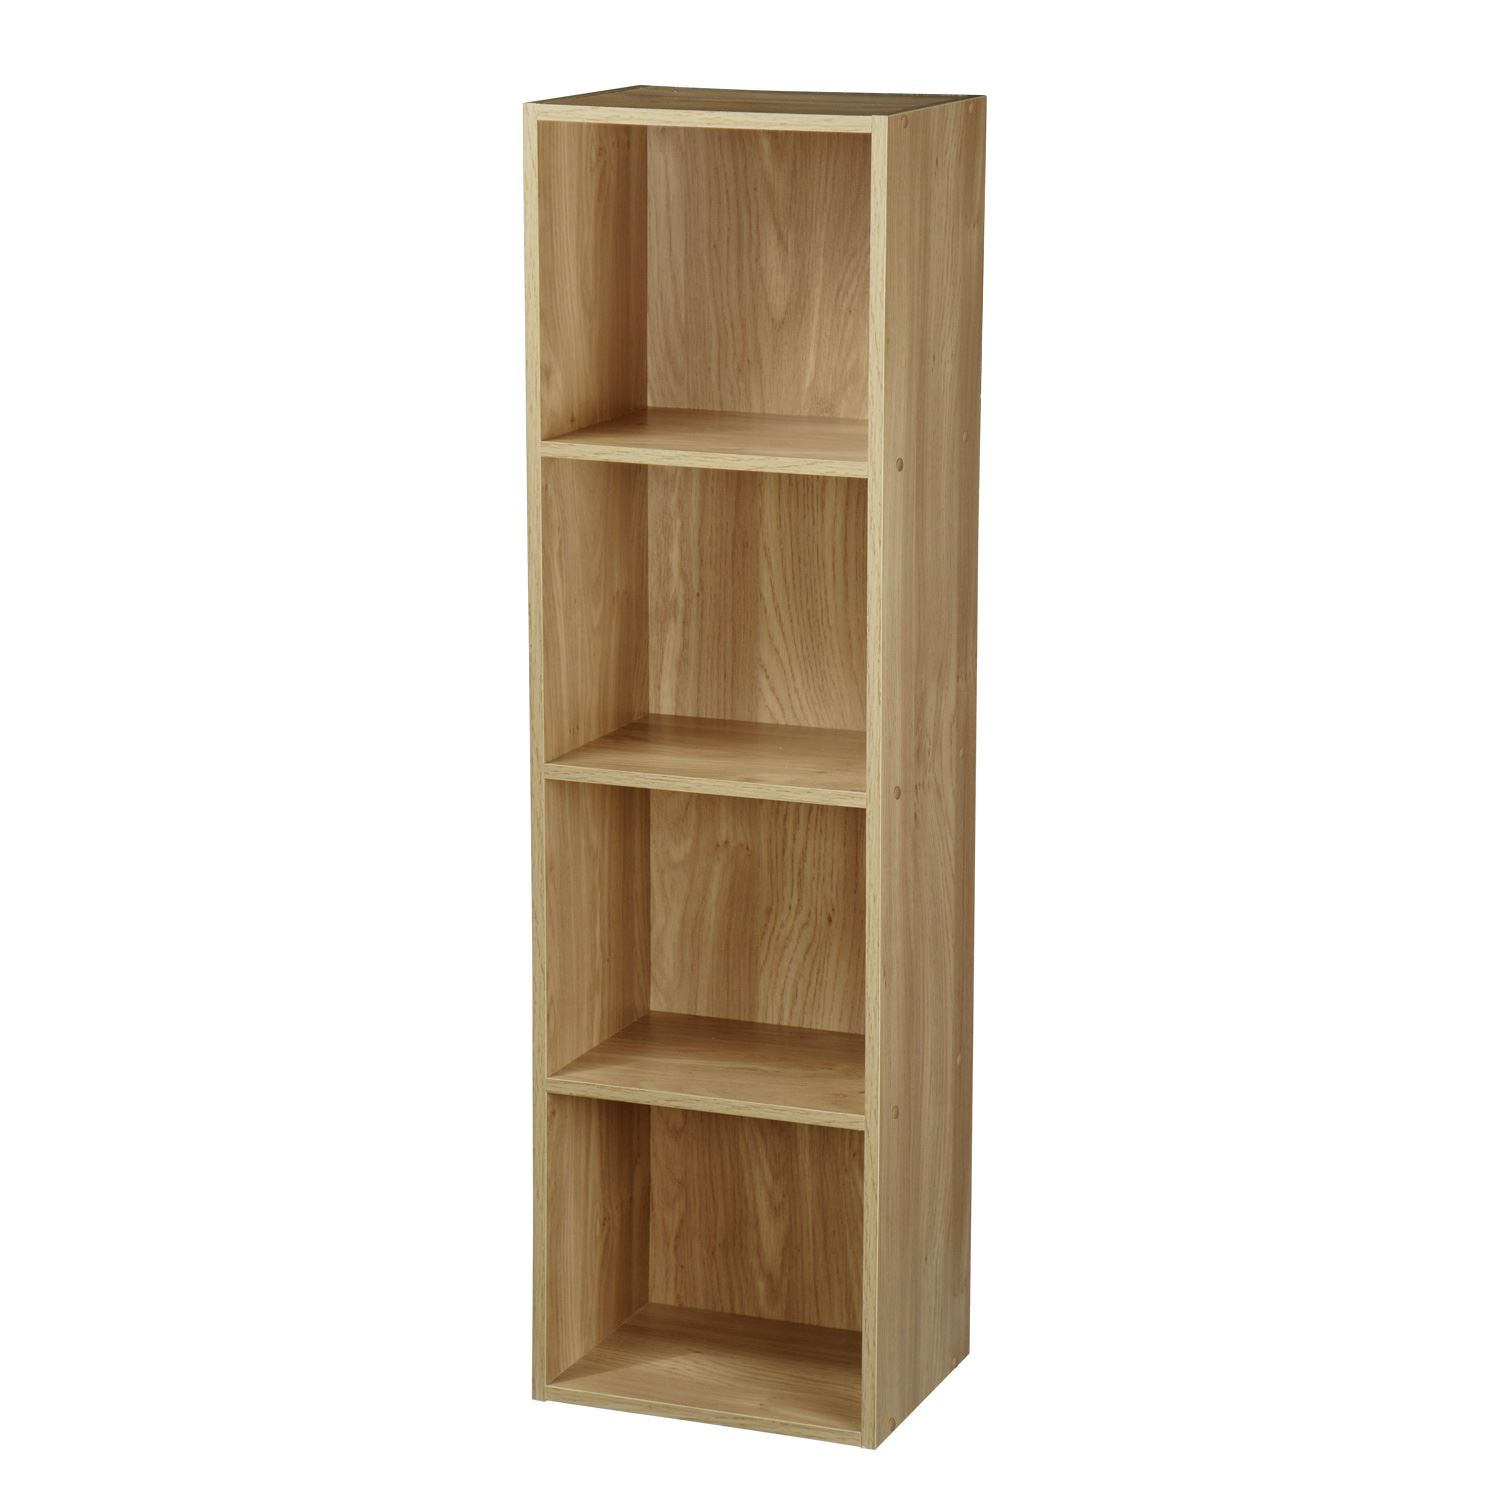 Tier wooden bookcase shelving display storage